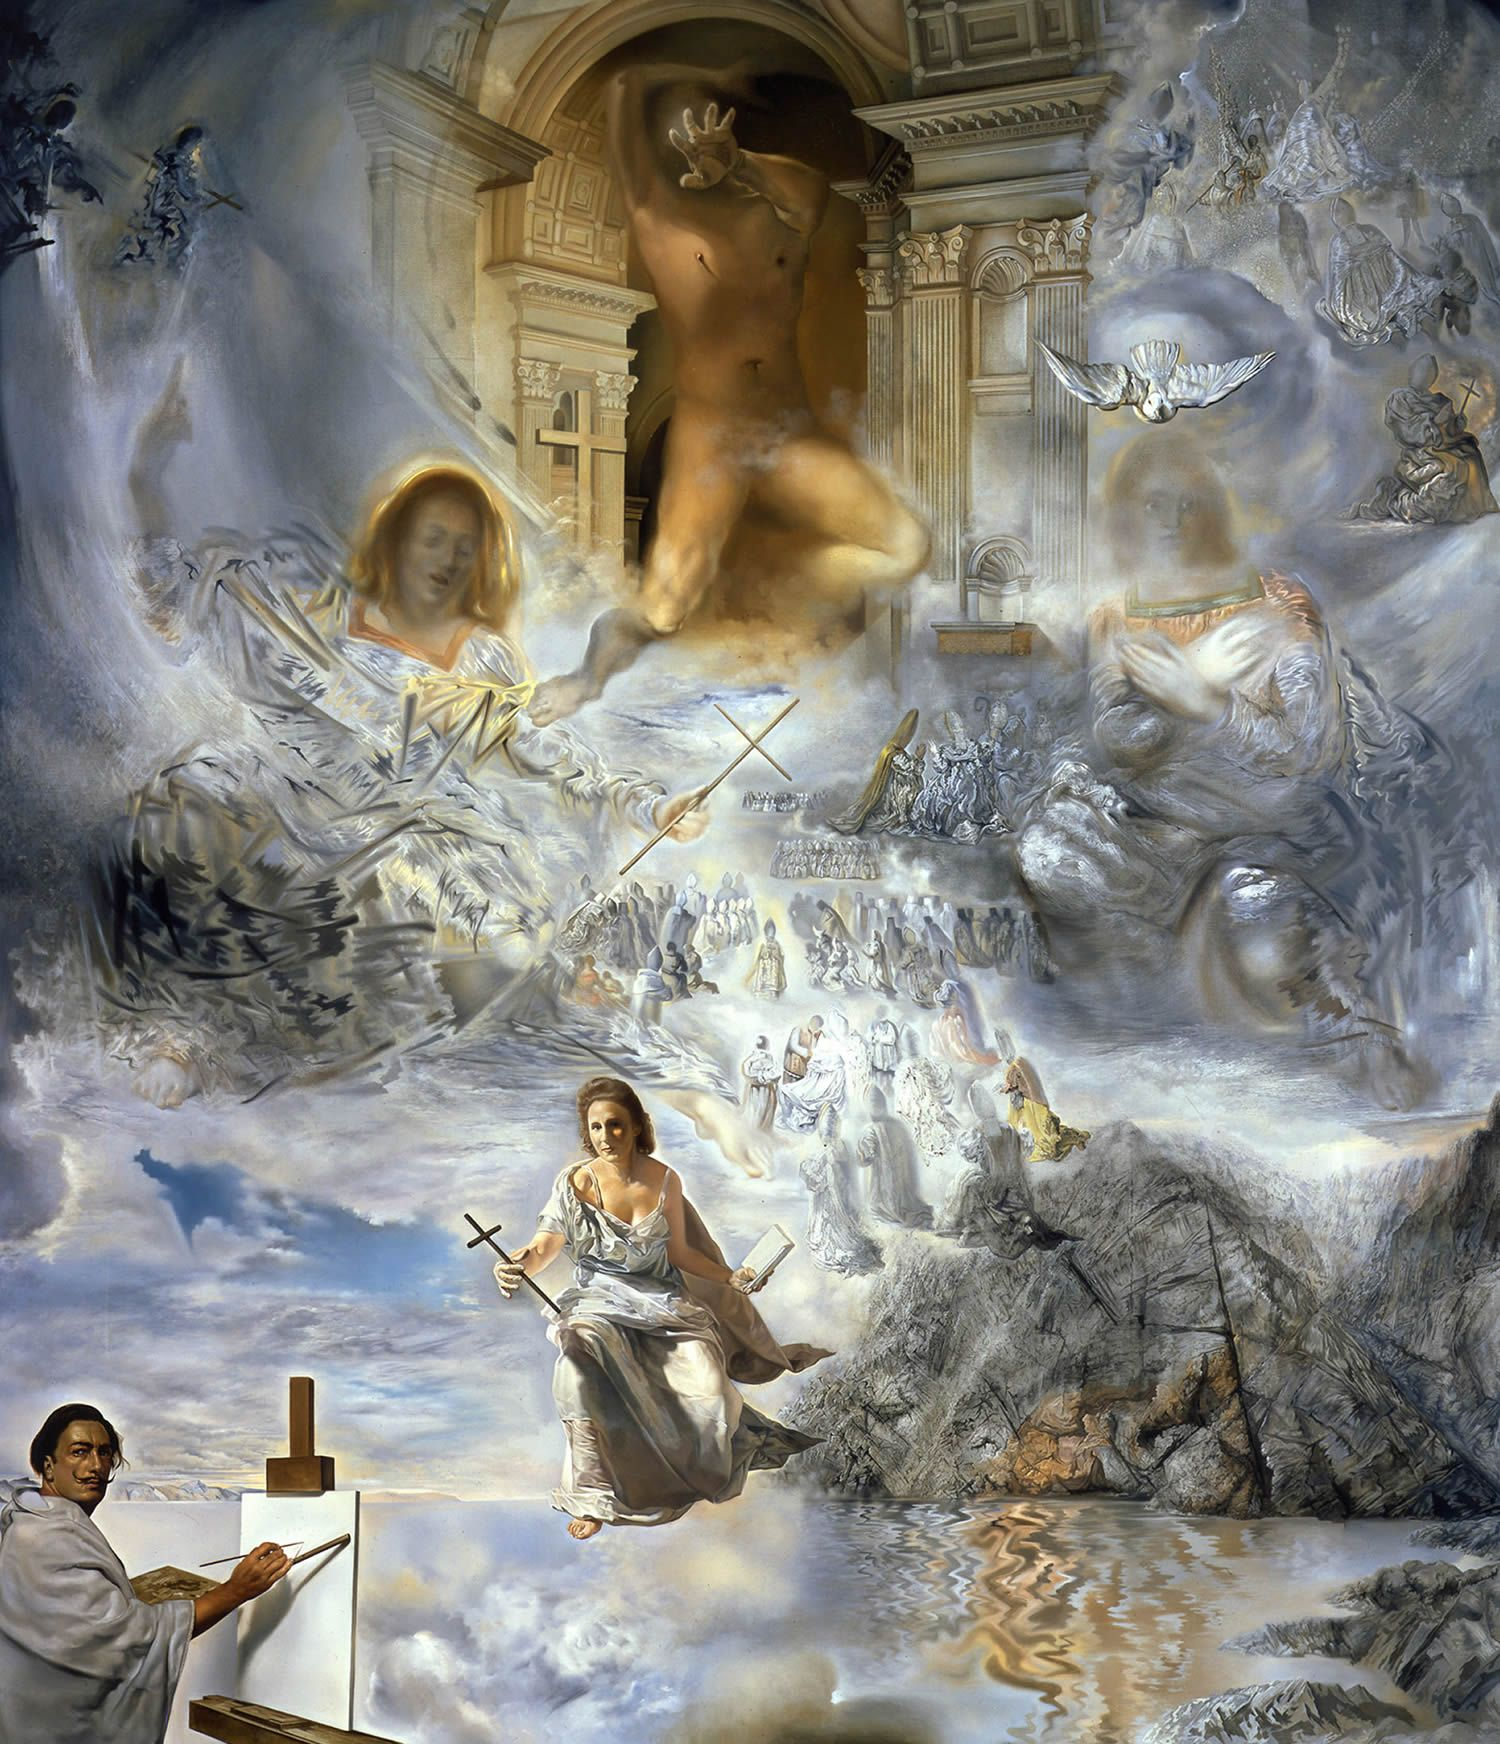 ecumenical council salvador dali salvador dali ecumenical council salvador dali